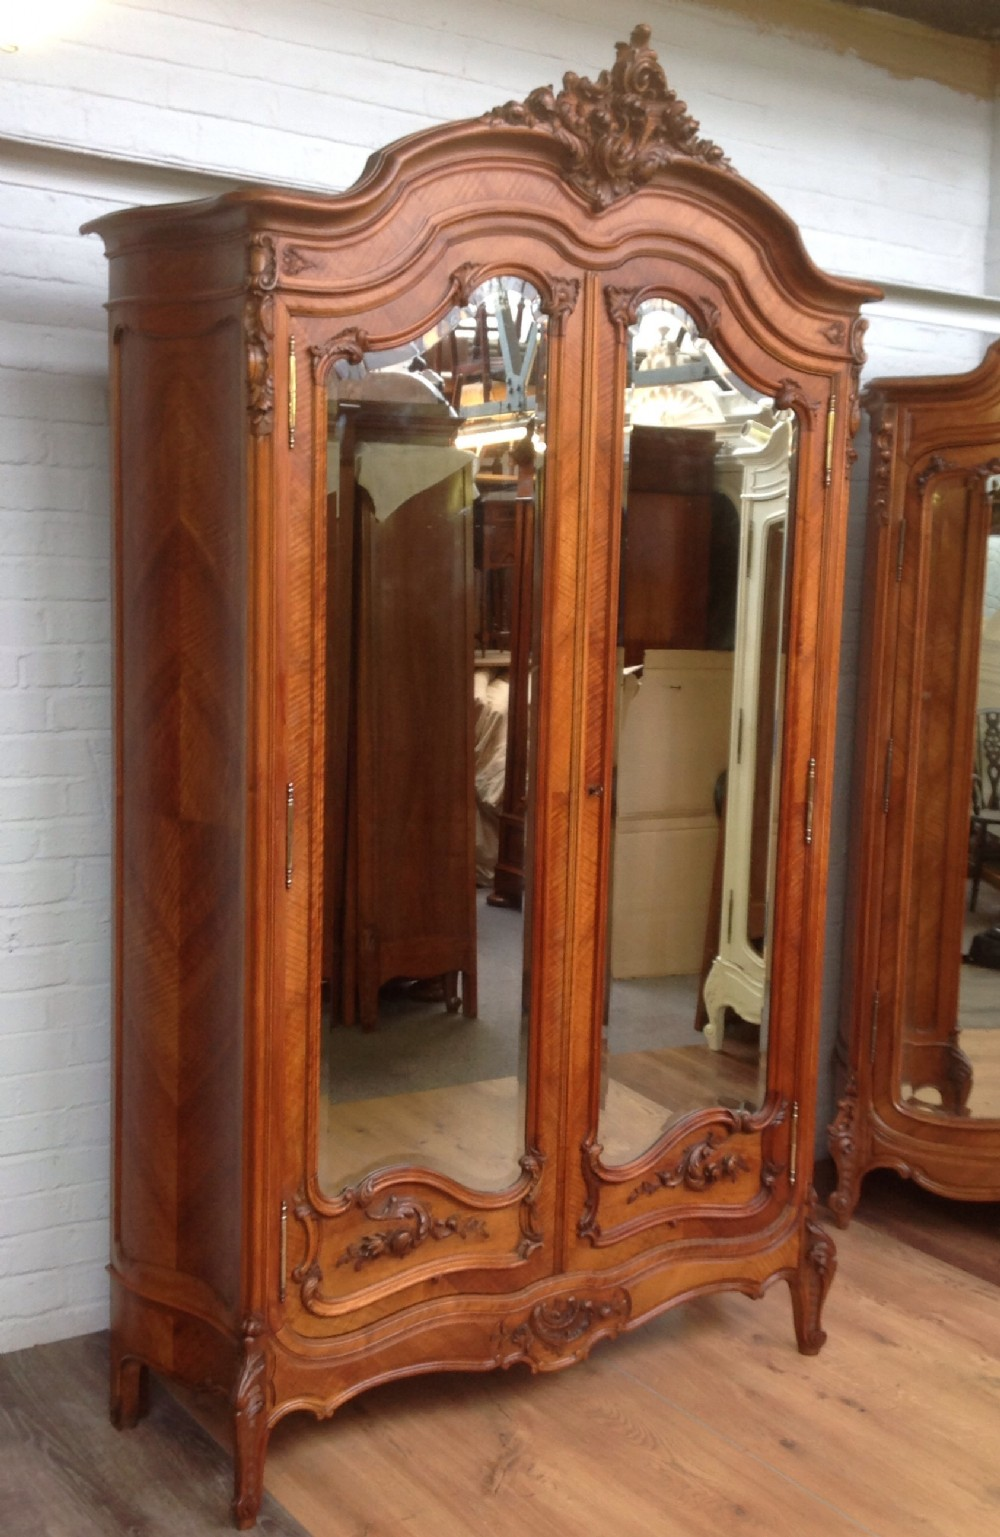 Antique French Walnut Armoire With Carved Doors 287475